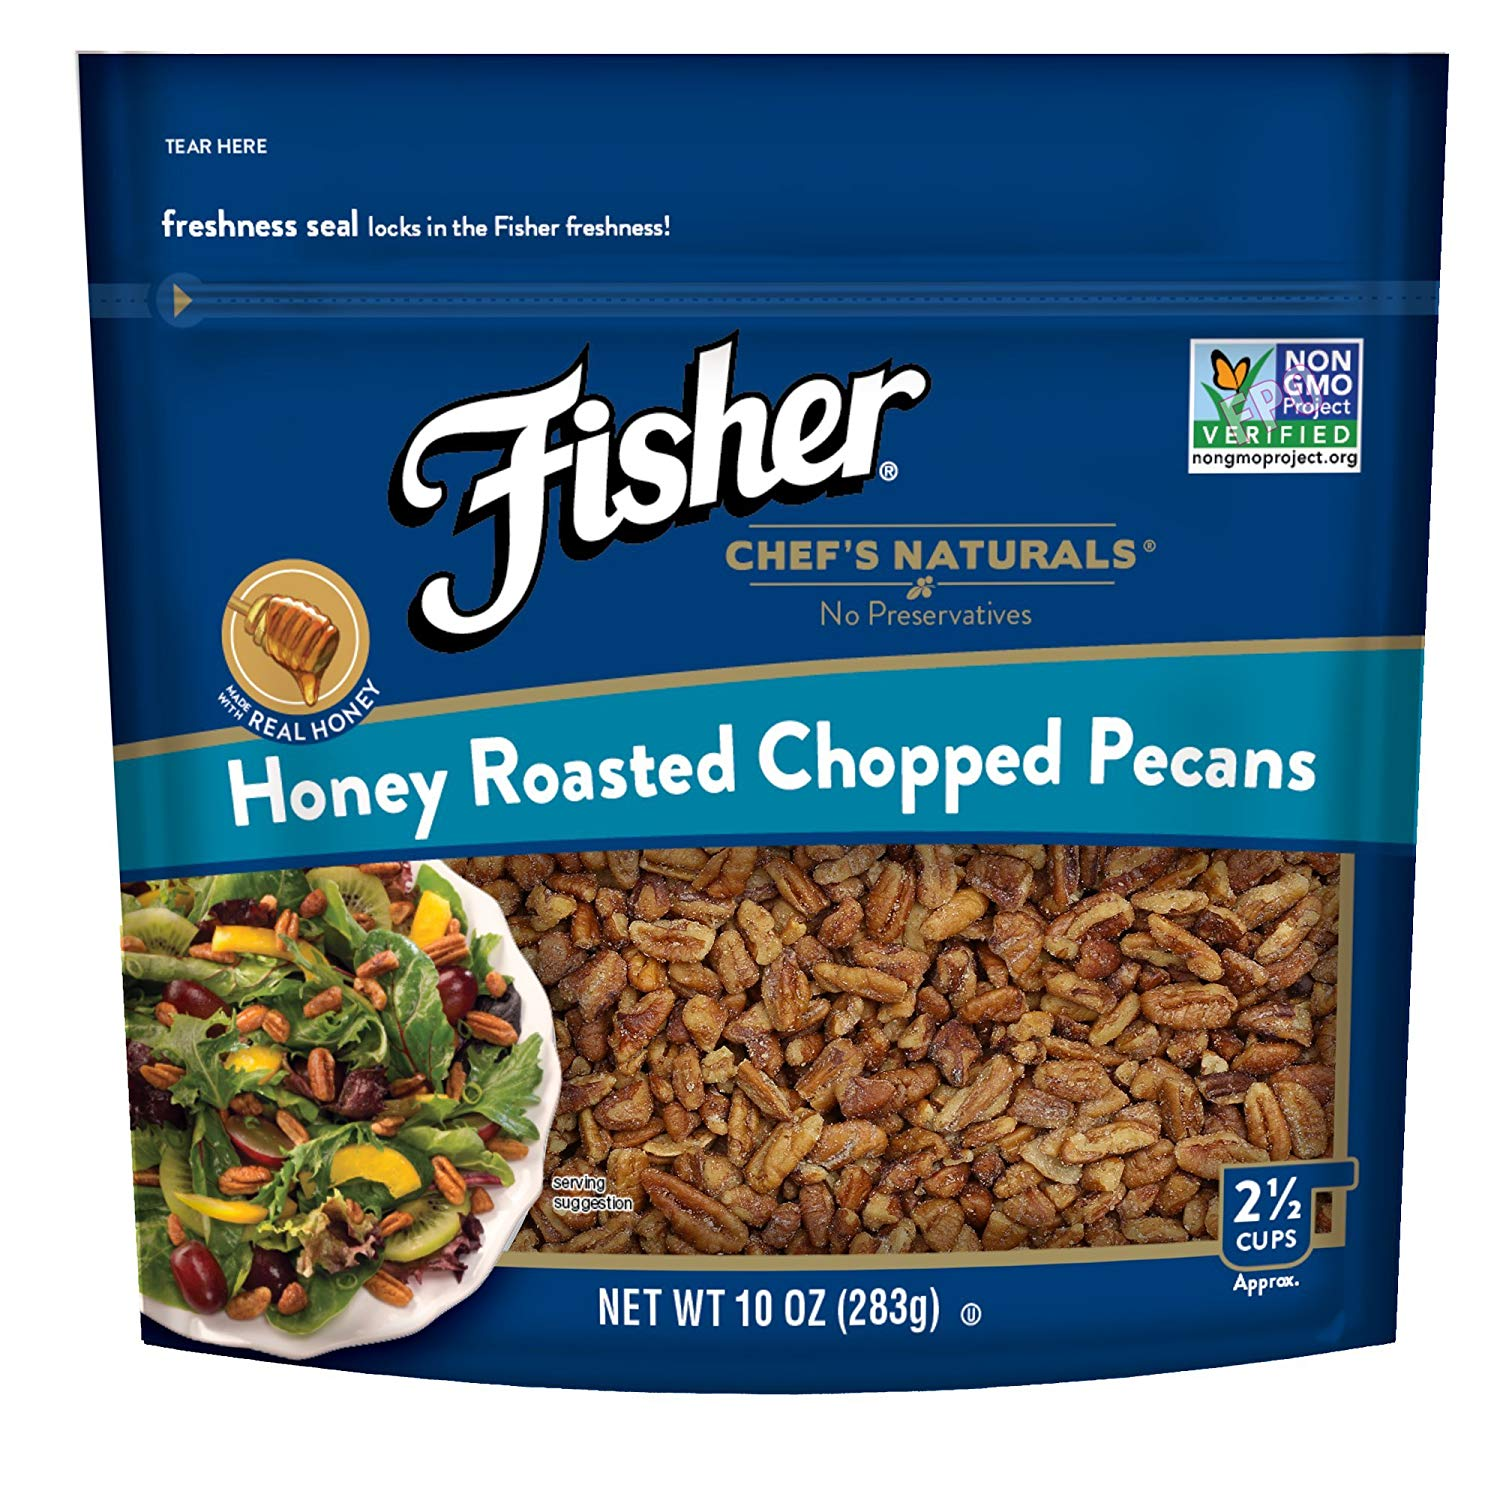 Fisher Honey Roasted Chopped Pecans, Non-GMO, No Preservatives, 10 oz